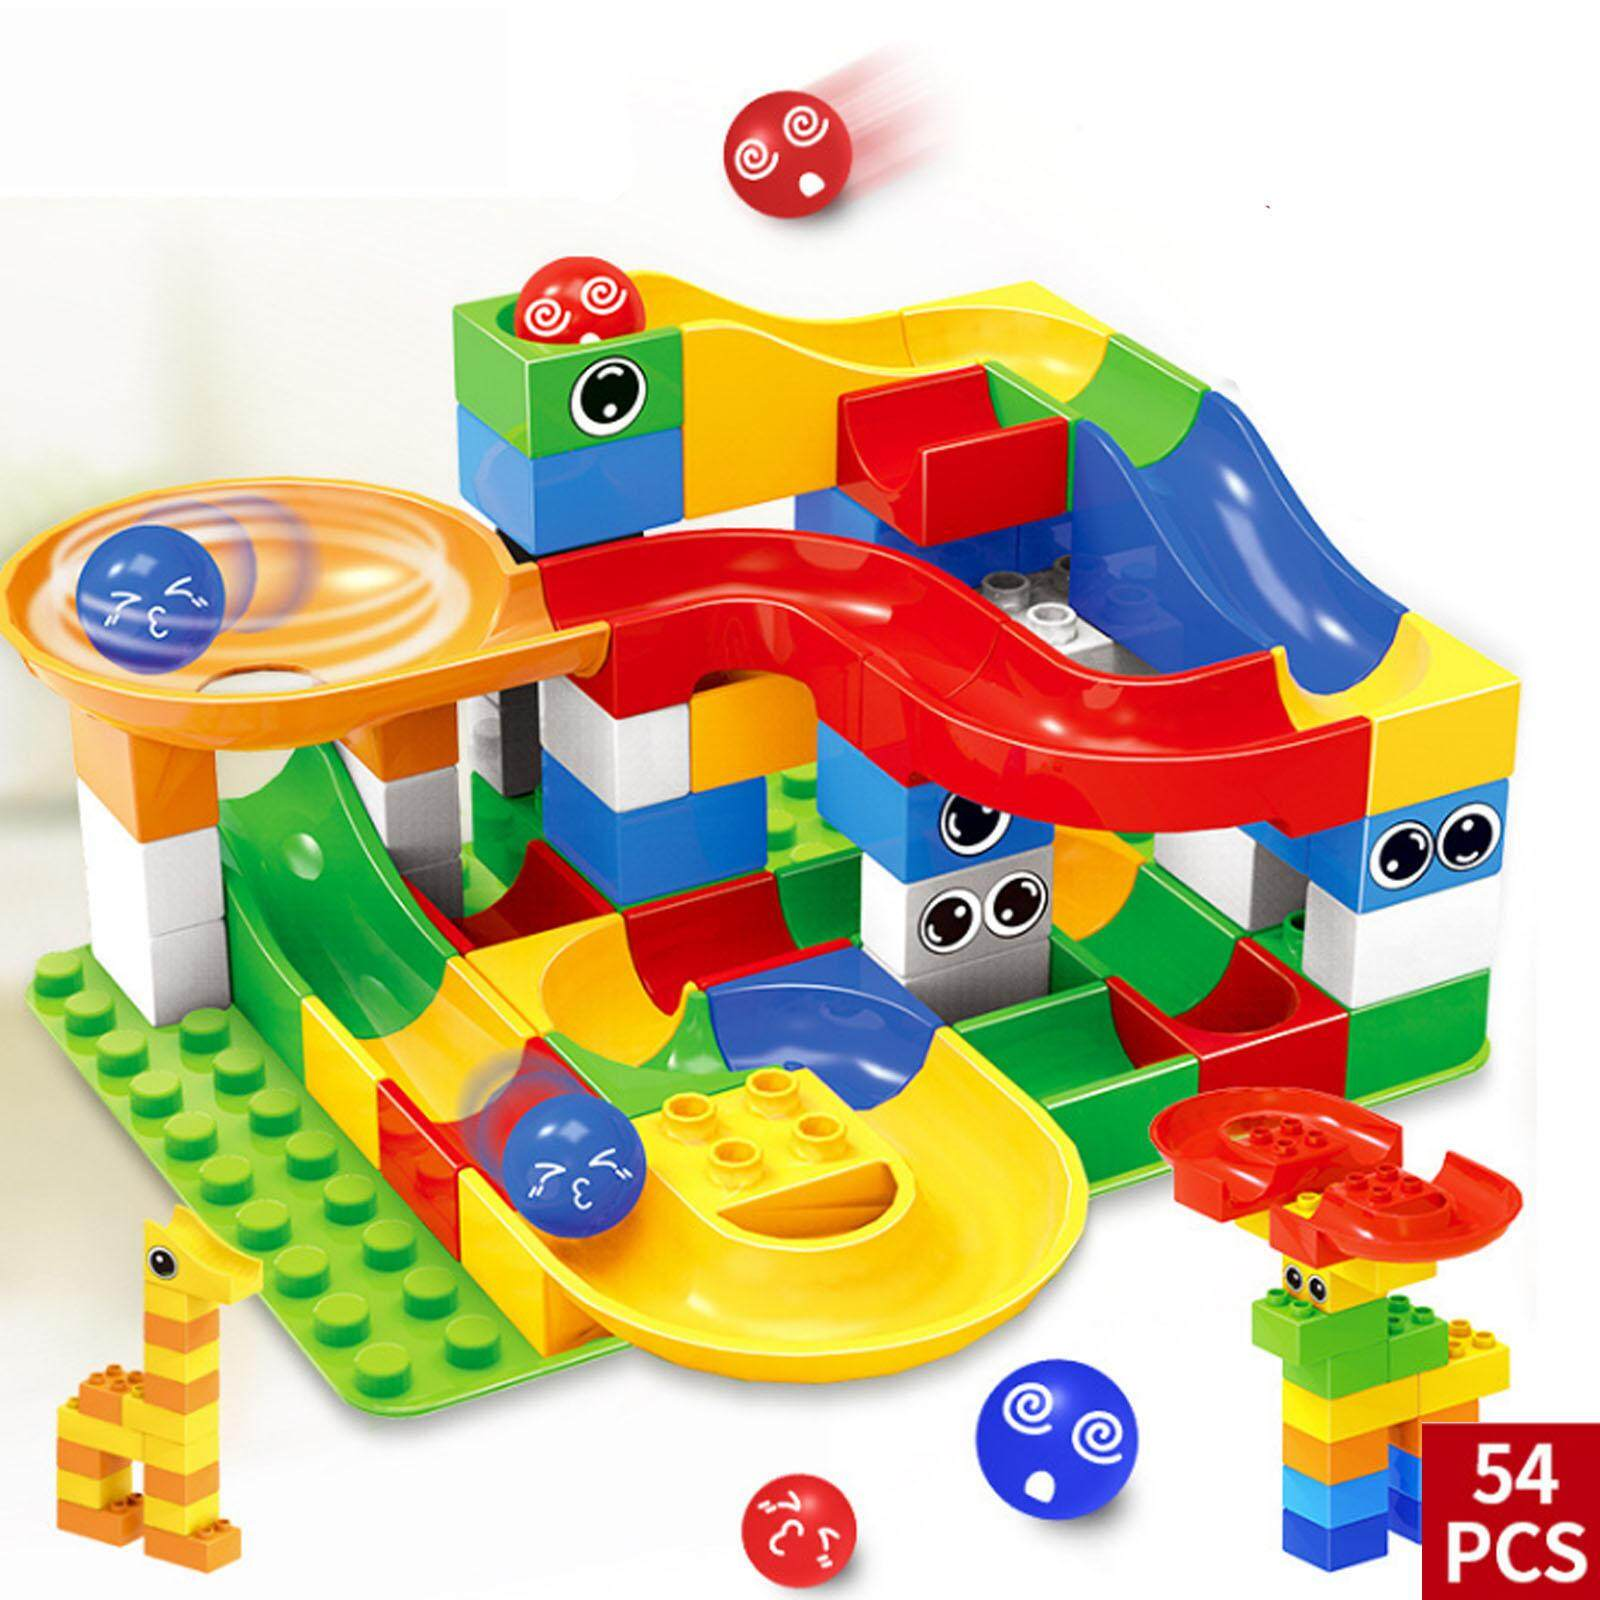 Nava Diy Children Creative 54 Pcs Colorful Large Slide Marble Puzzle Kids Toys By Nava.